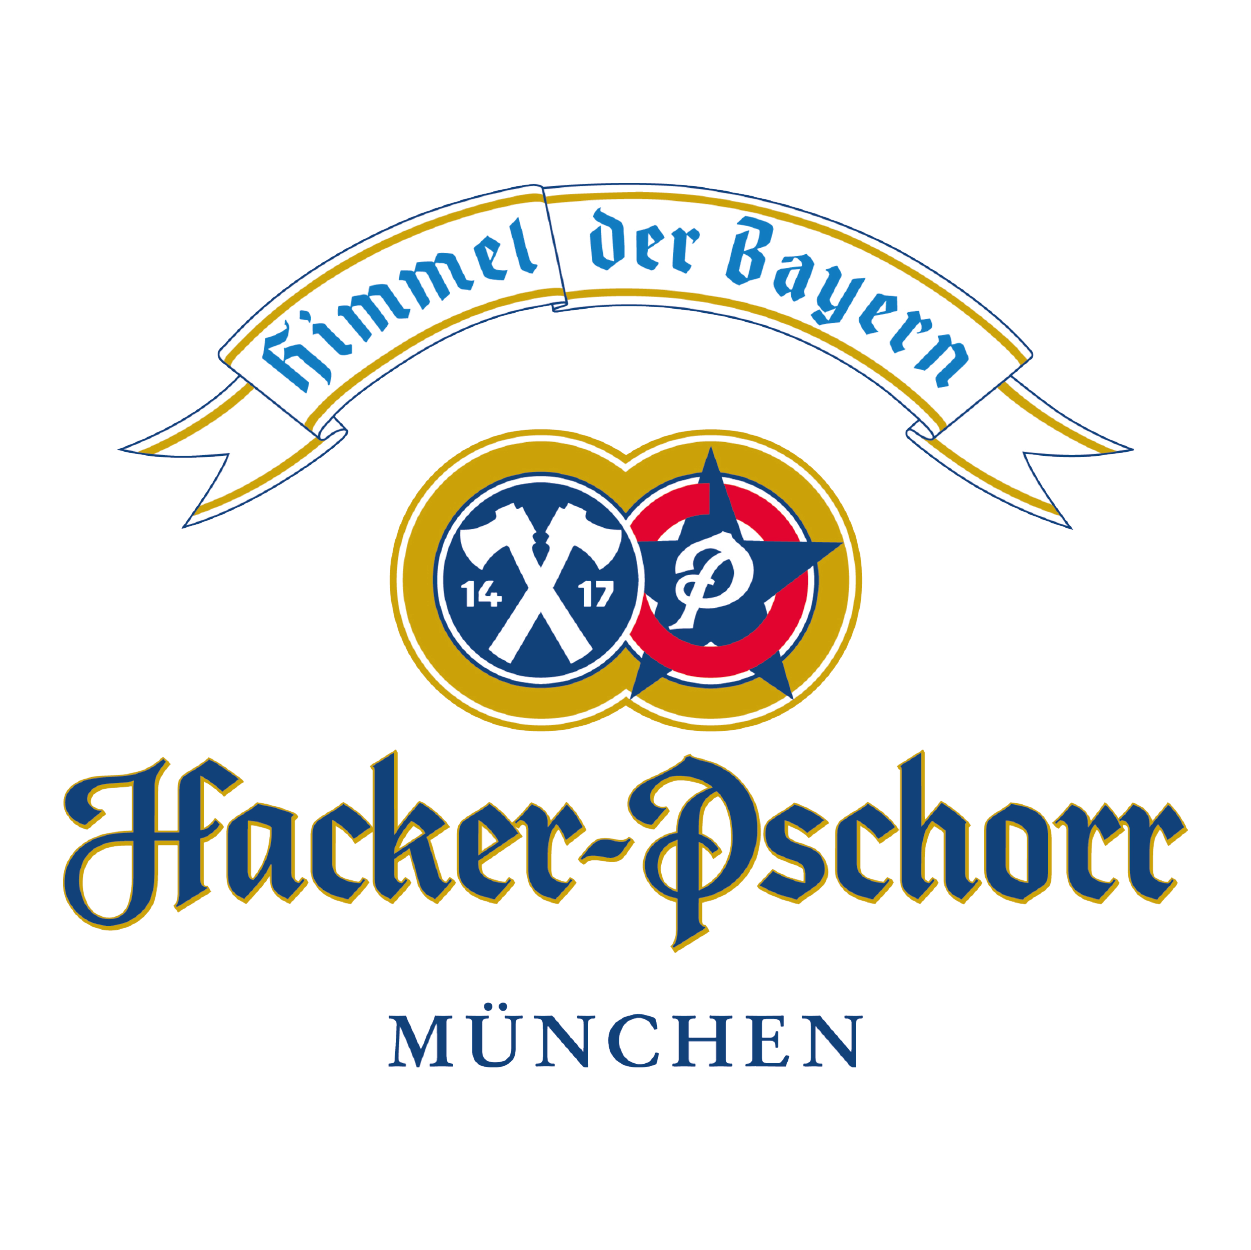 Hacker-Pschorr